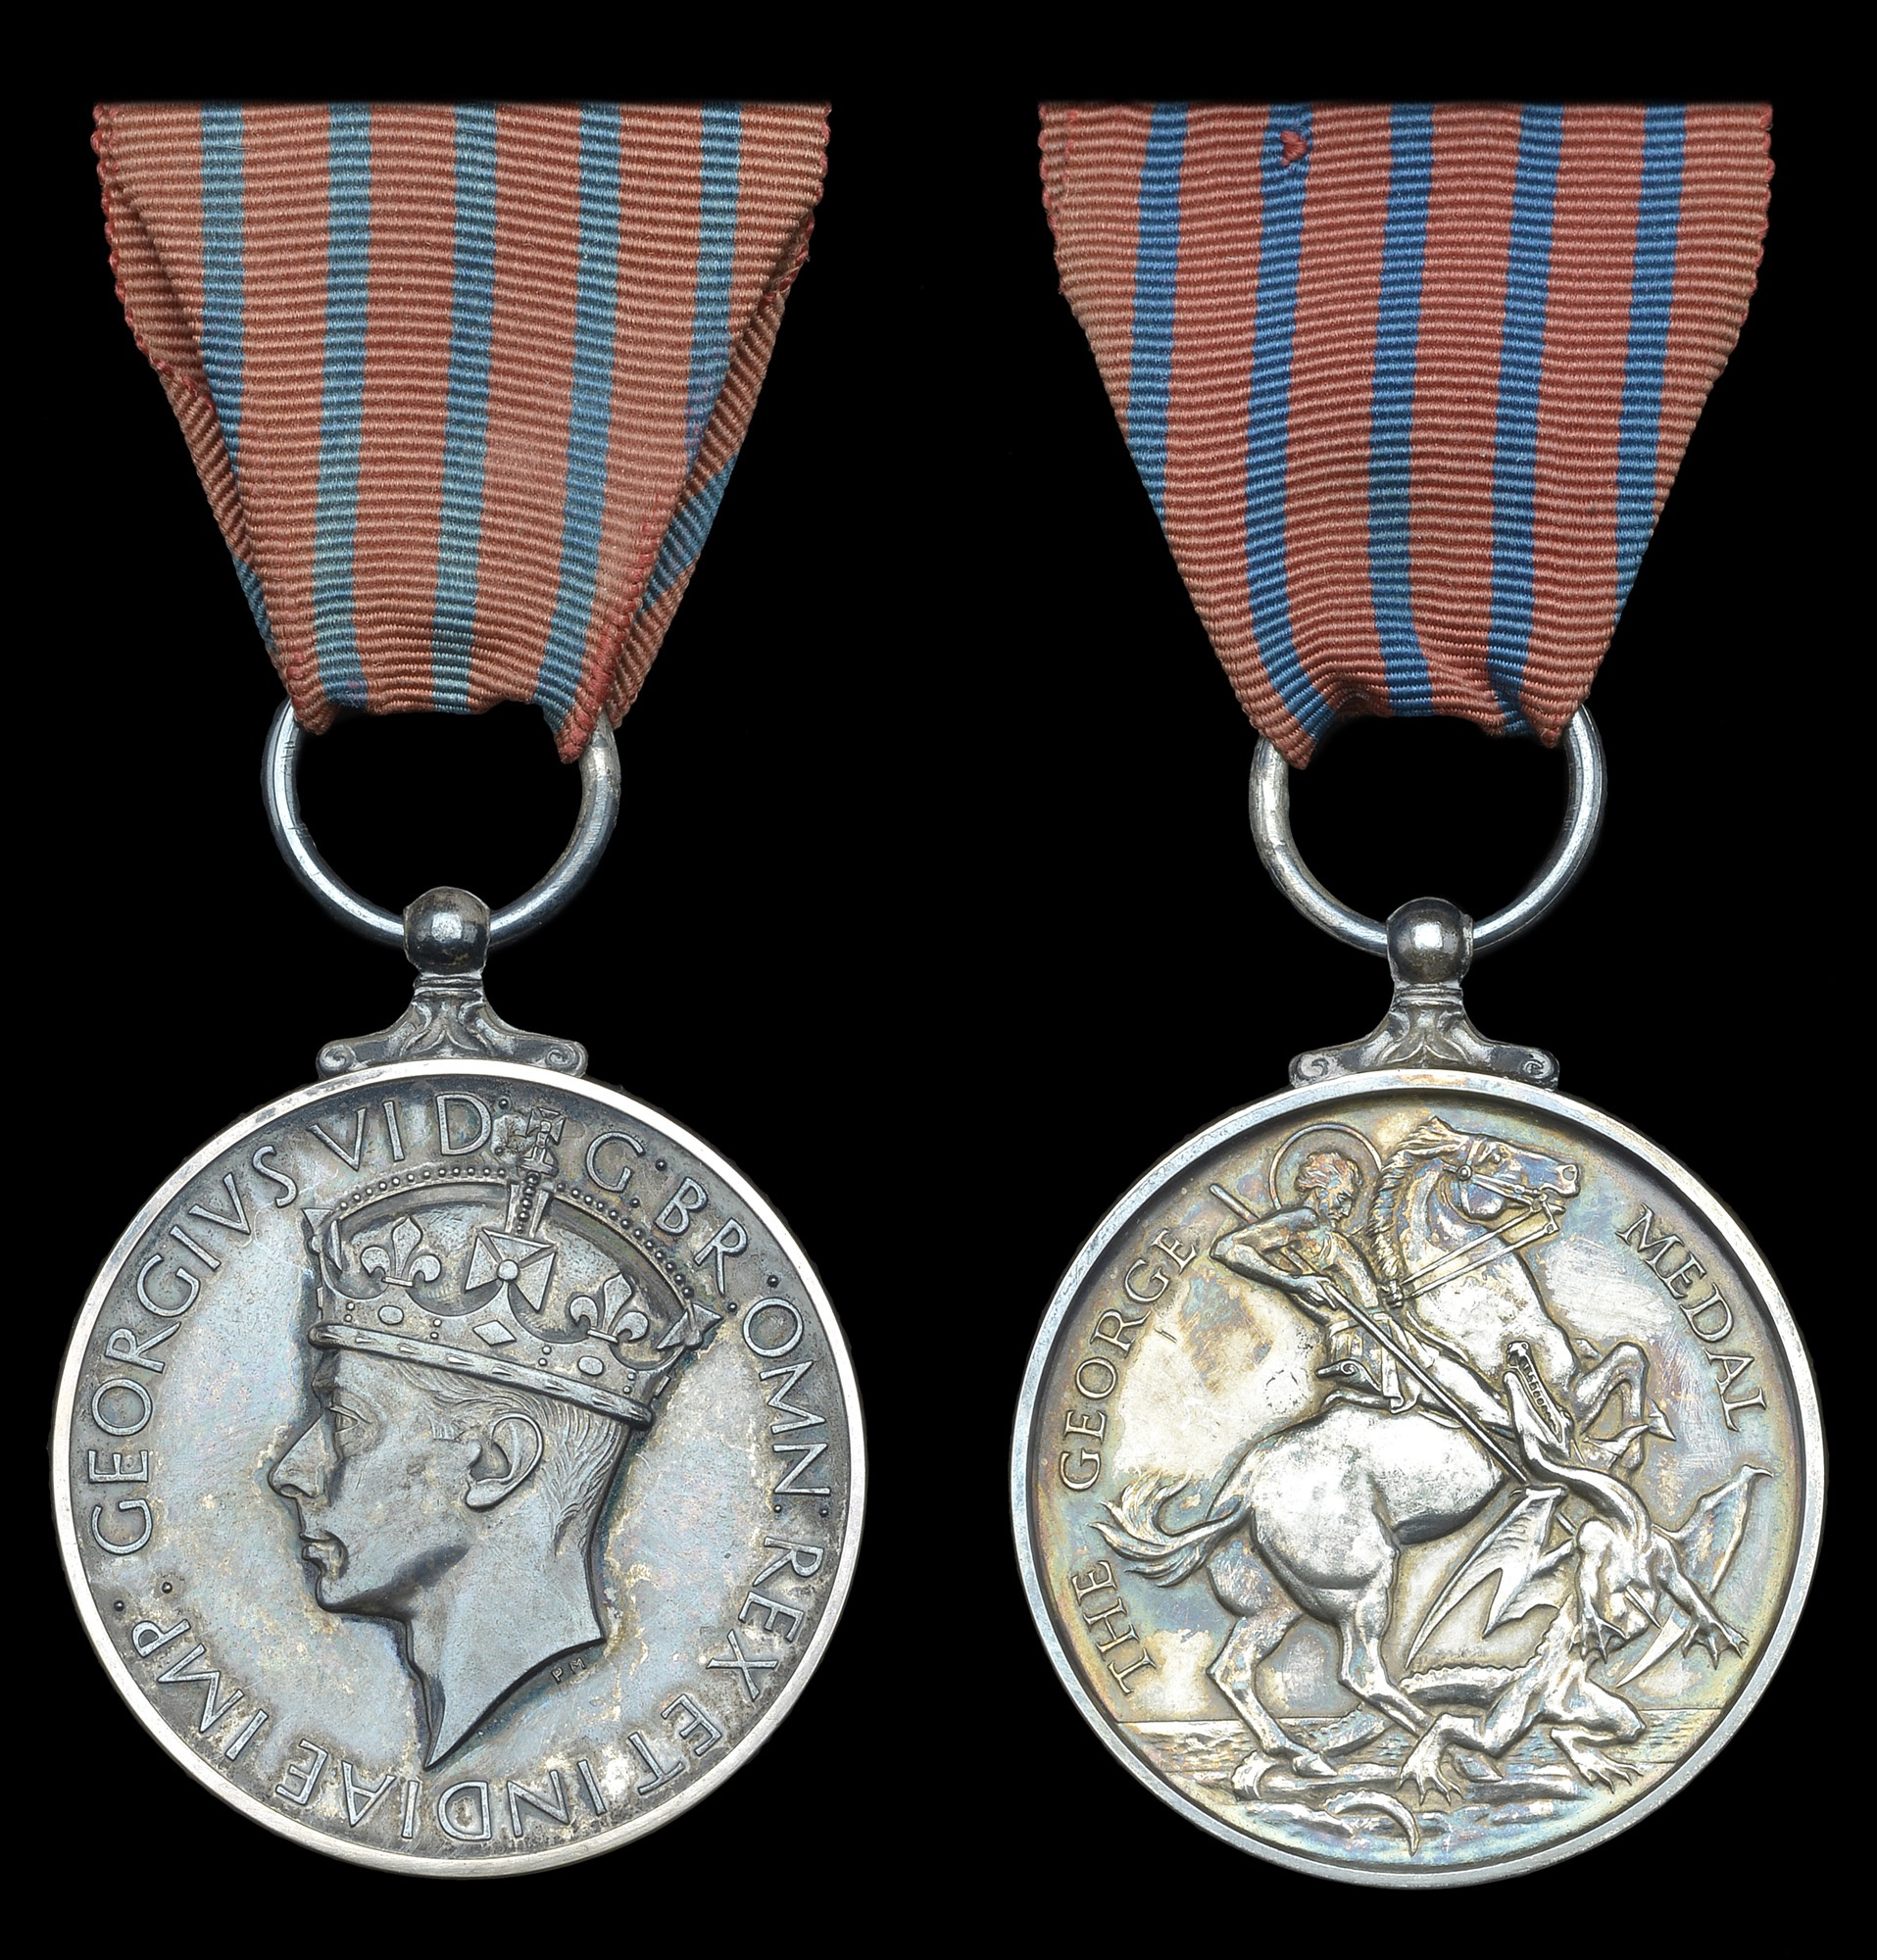 The George Medal, showing obverse and reverse